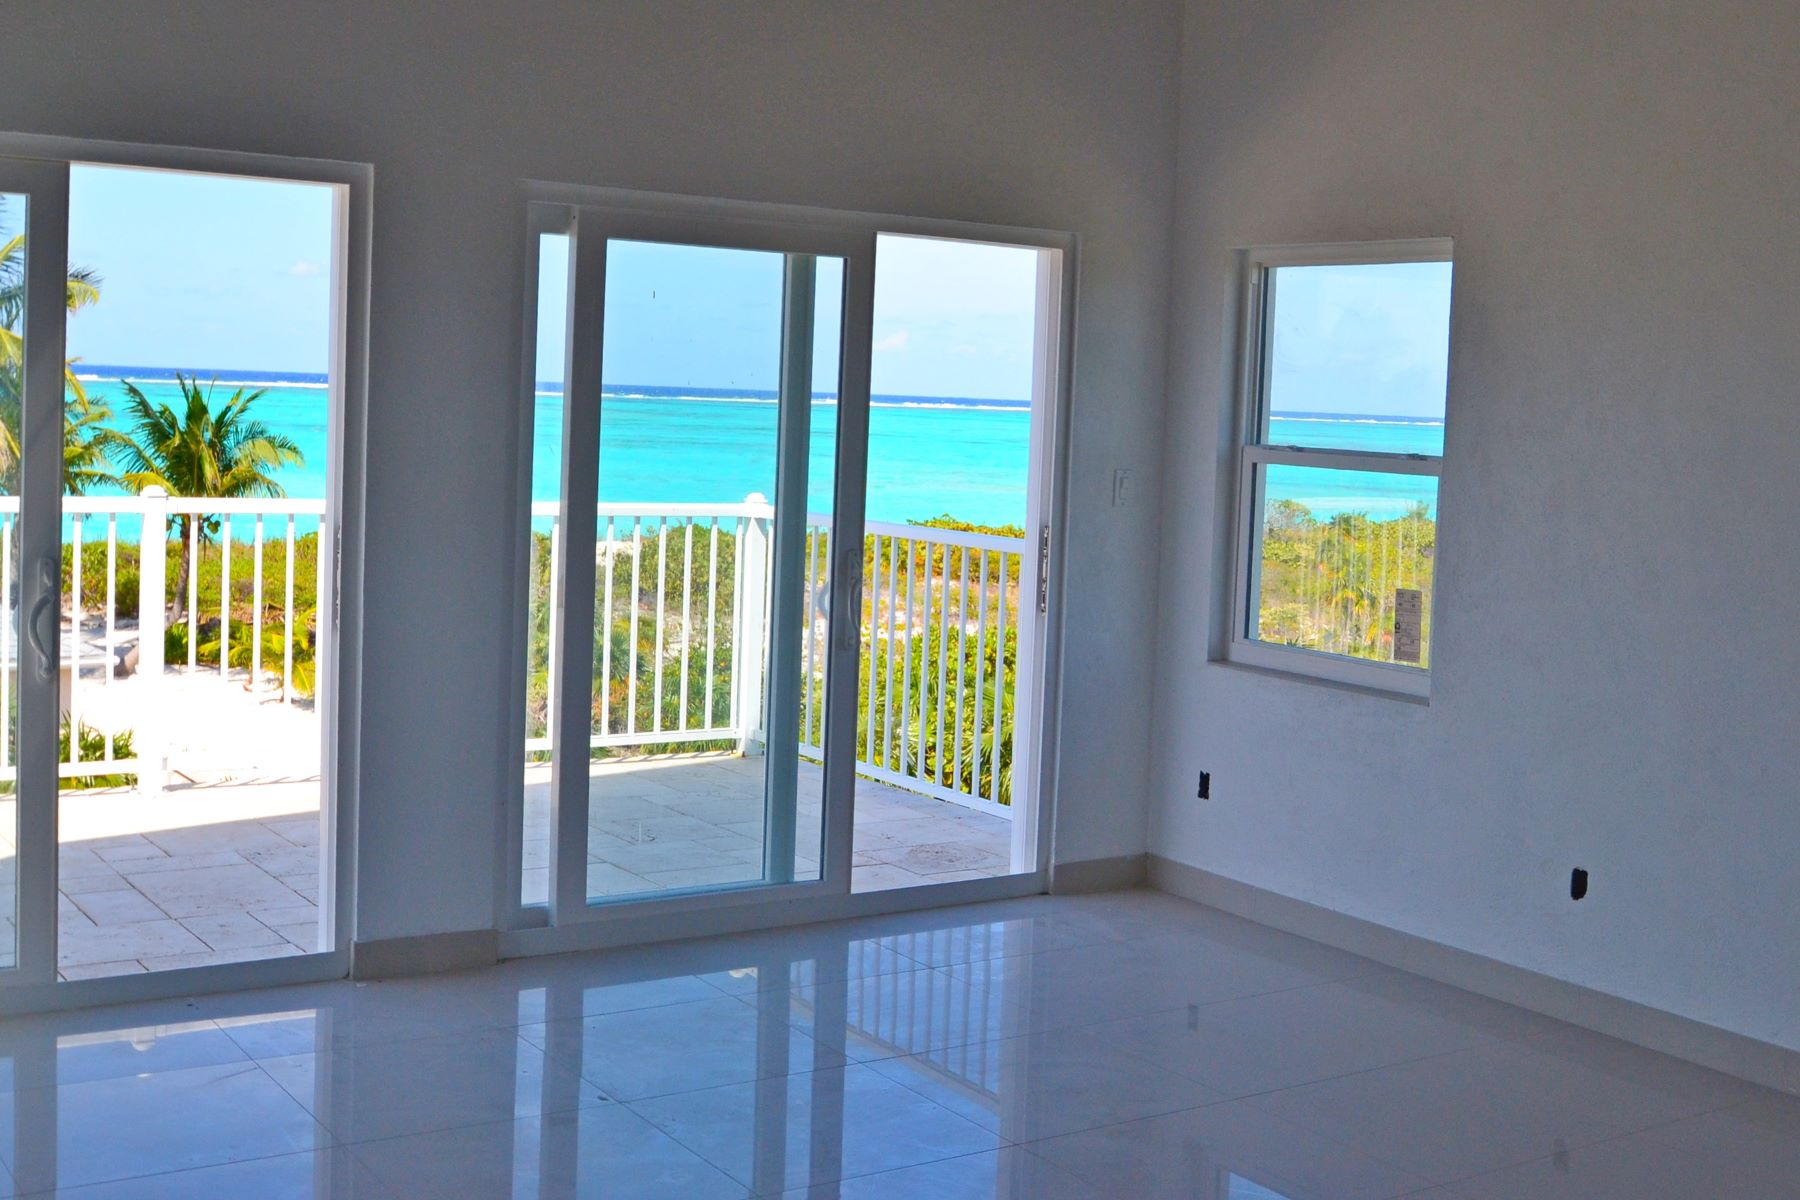 Single Family Home for Sale at Whitby North Caicos Whitby, North Caicos Turks And Caicos Islands